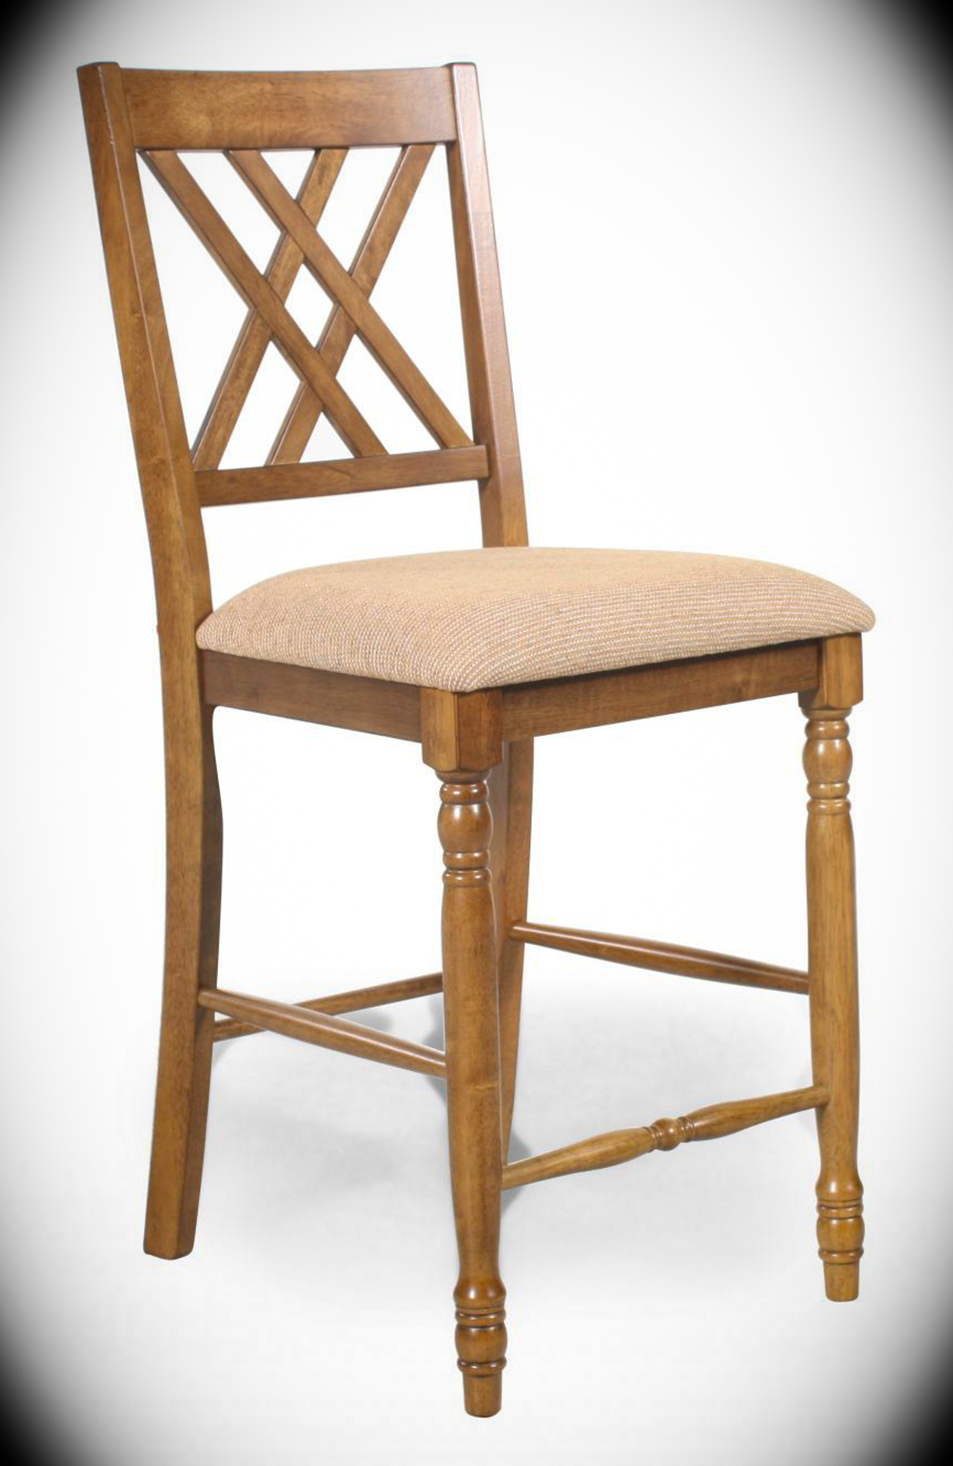 Counter Height Double X Back Upholstered Chair Florence